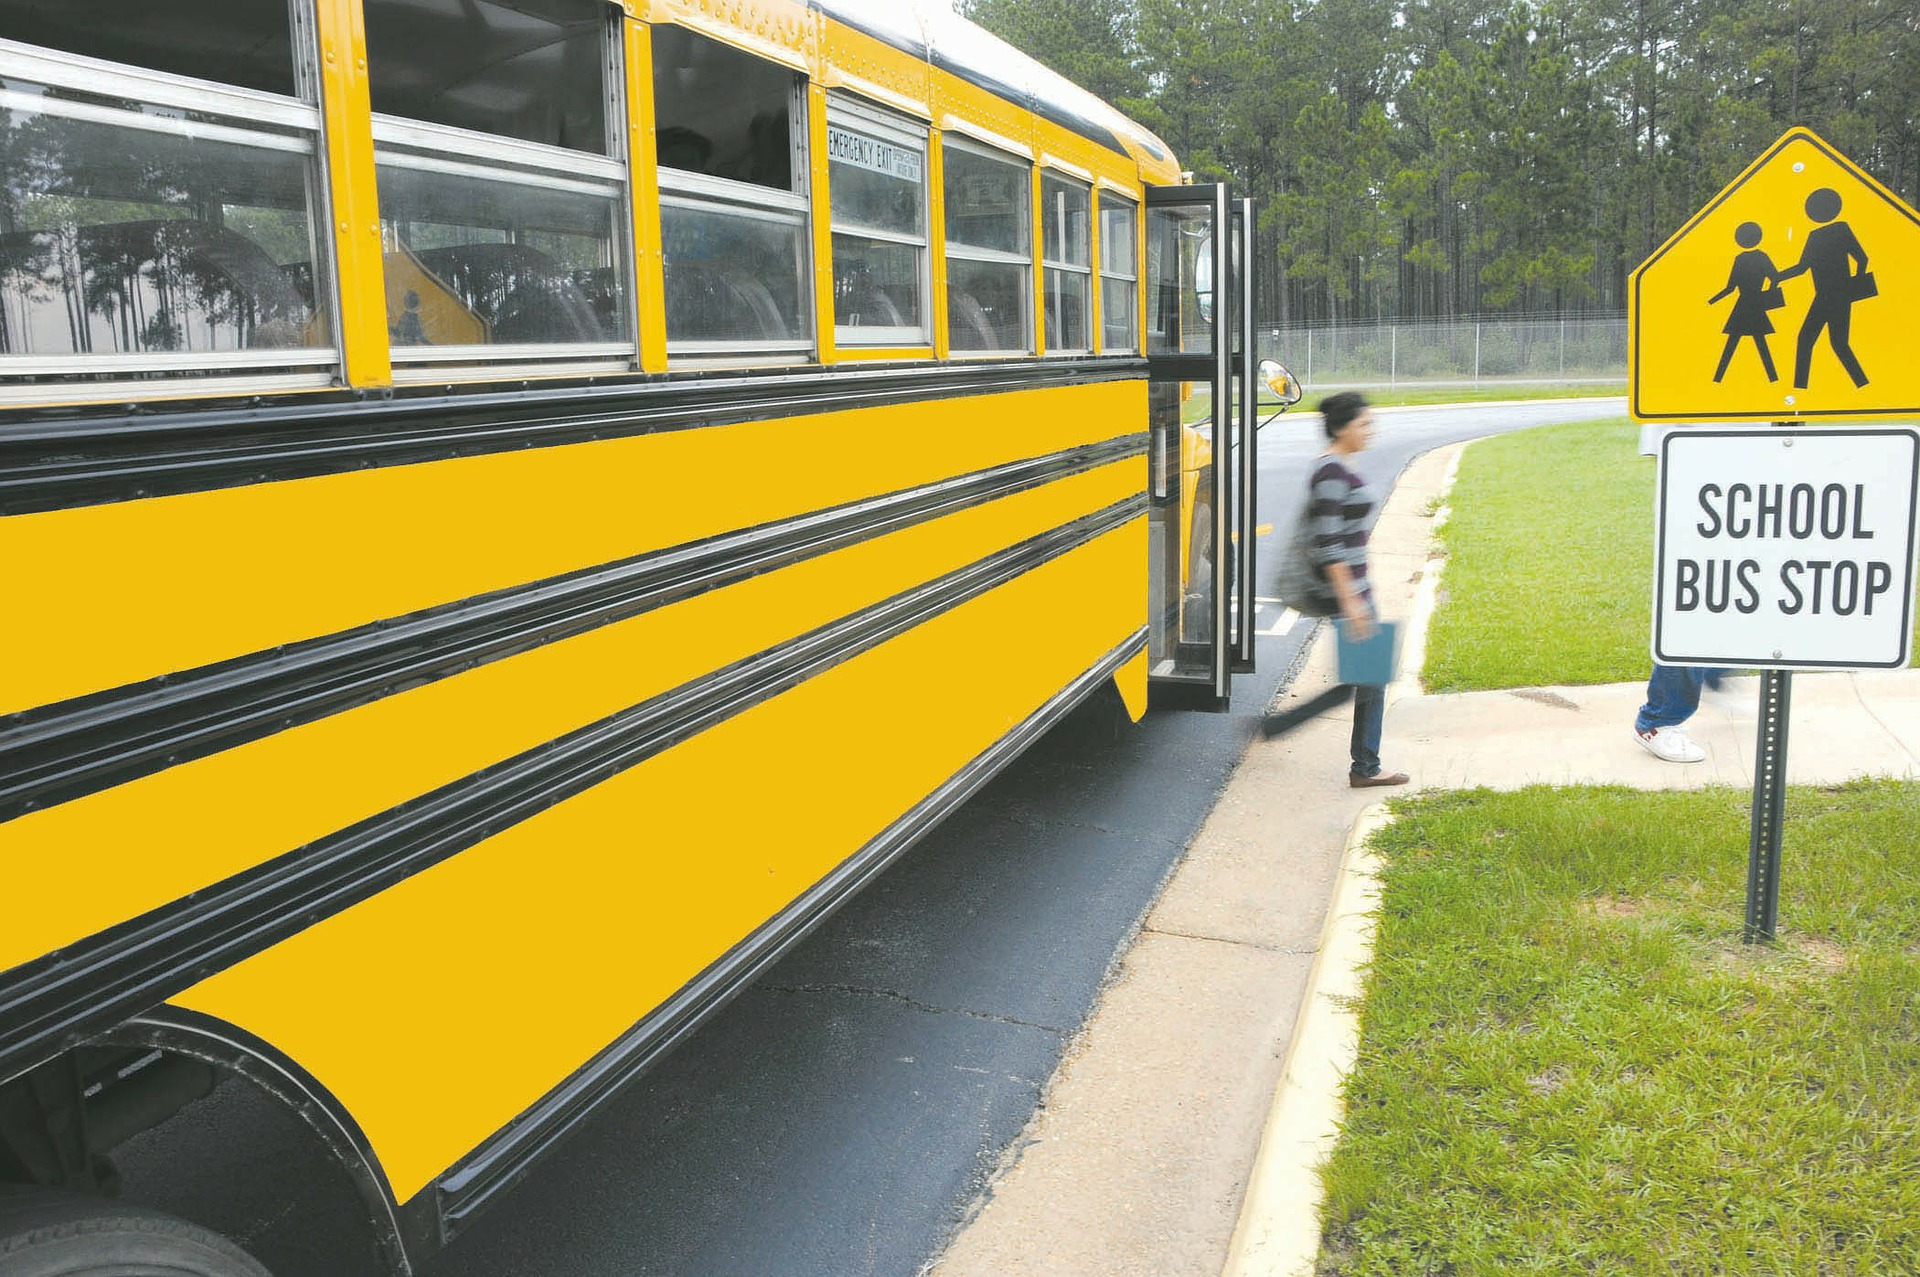 Florida Car Seat Laws For Buses